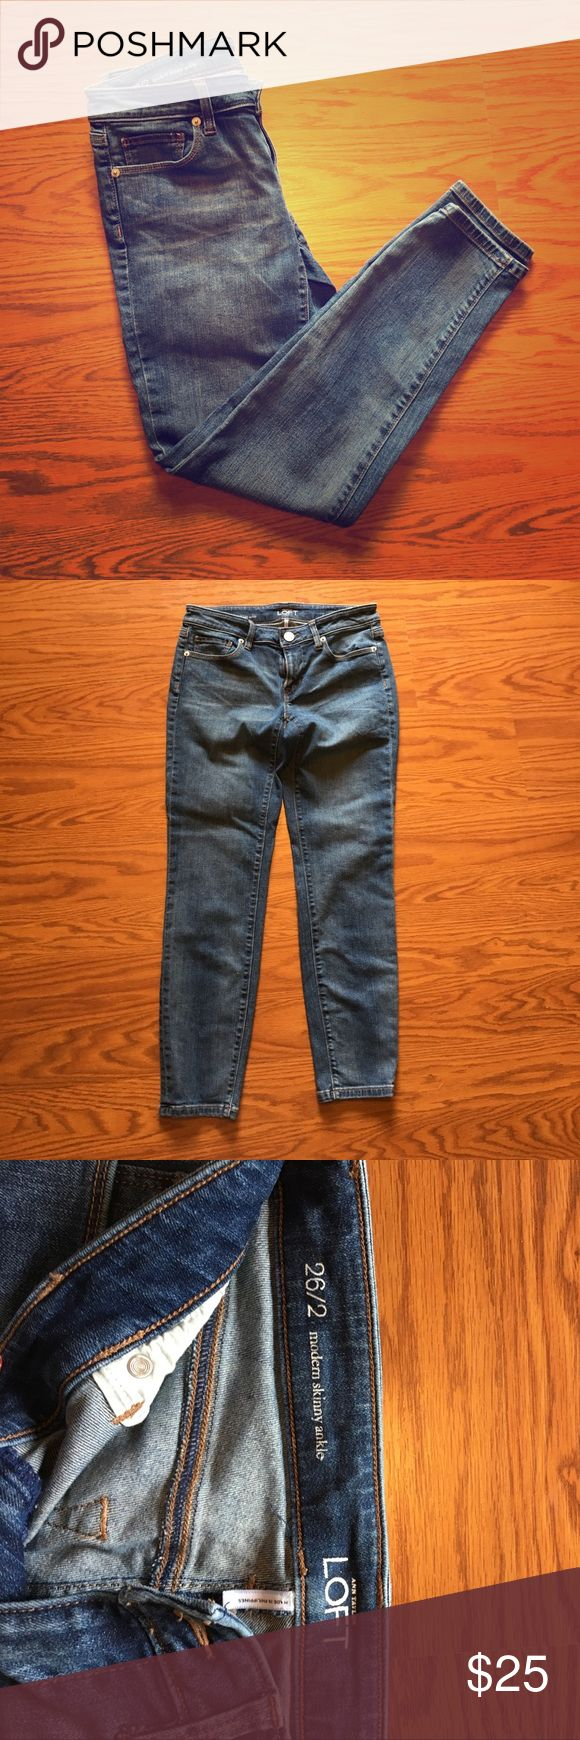 Anne Taylor Loft skinny ankle pant, Size 2 Ann Taylor Loft Modern Skinny Ankle, Size 2. Excellent used condition! No flaws! Ann Taylor Jeans Ankle & Cropped